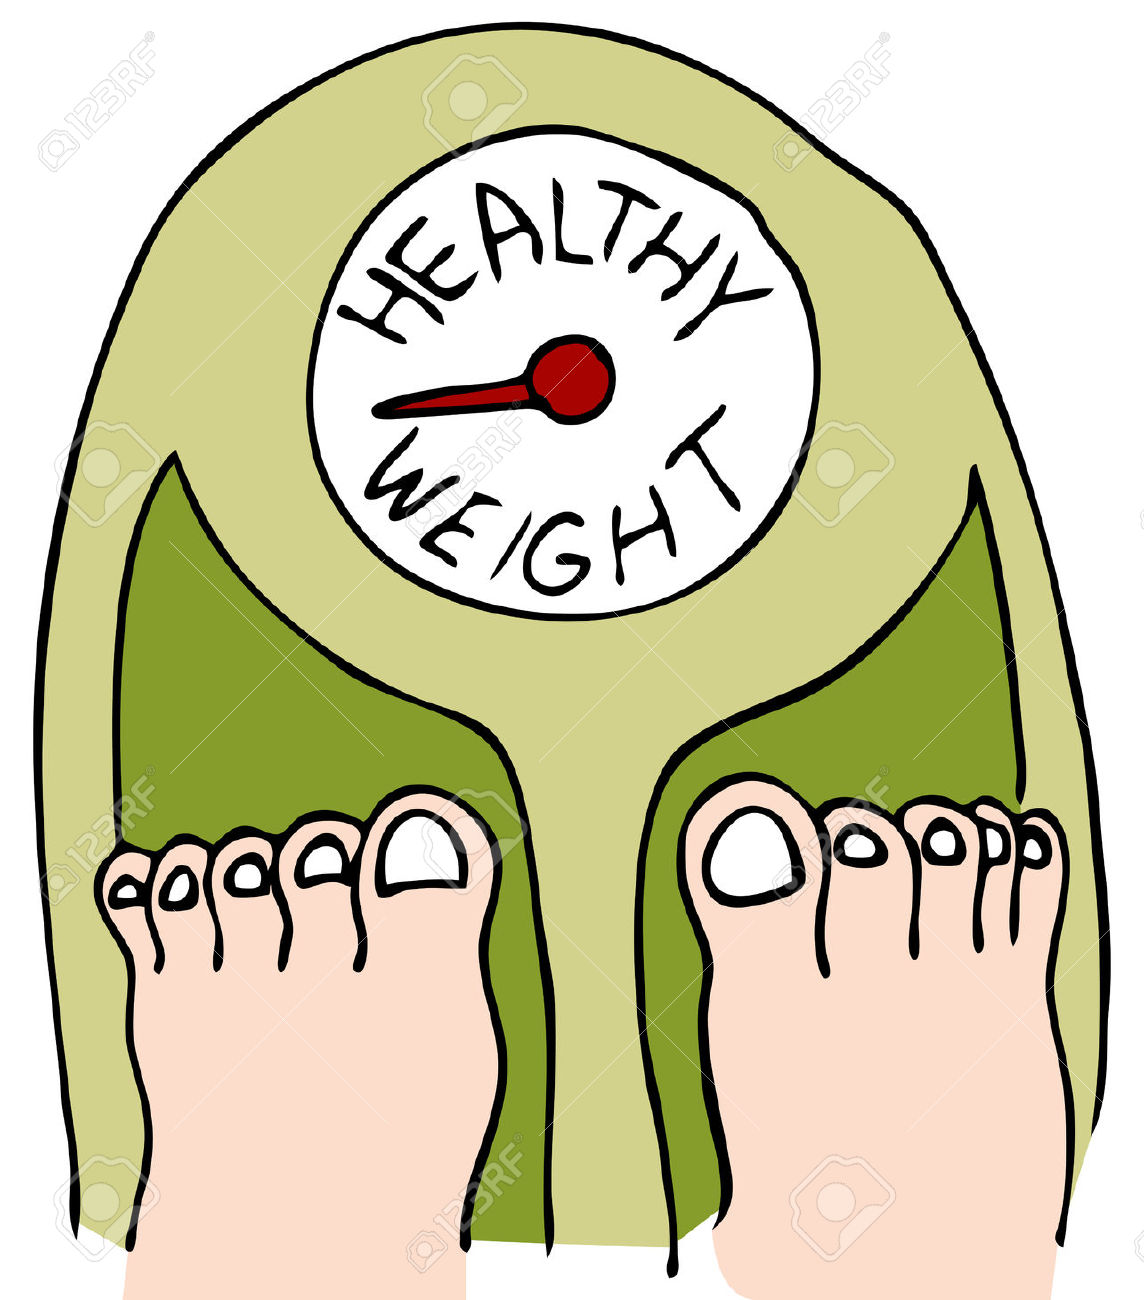 1144x1300 Collection Of Healthy Body Weight Clipart High Quality, Free